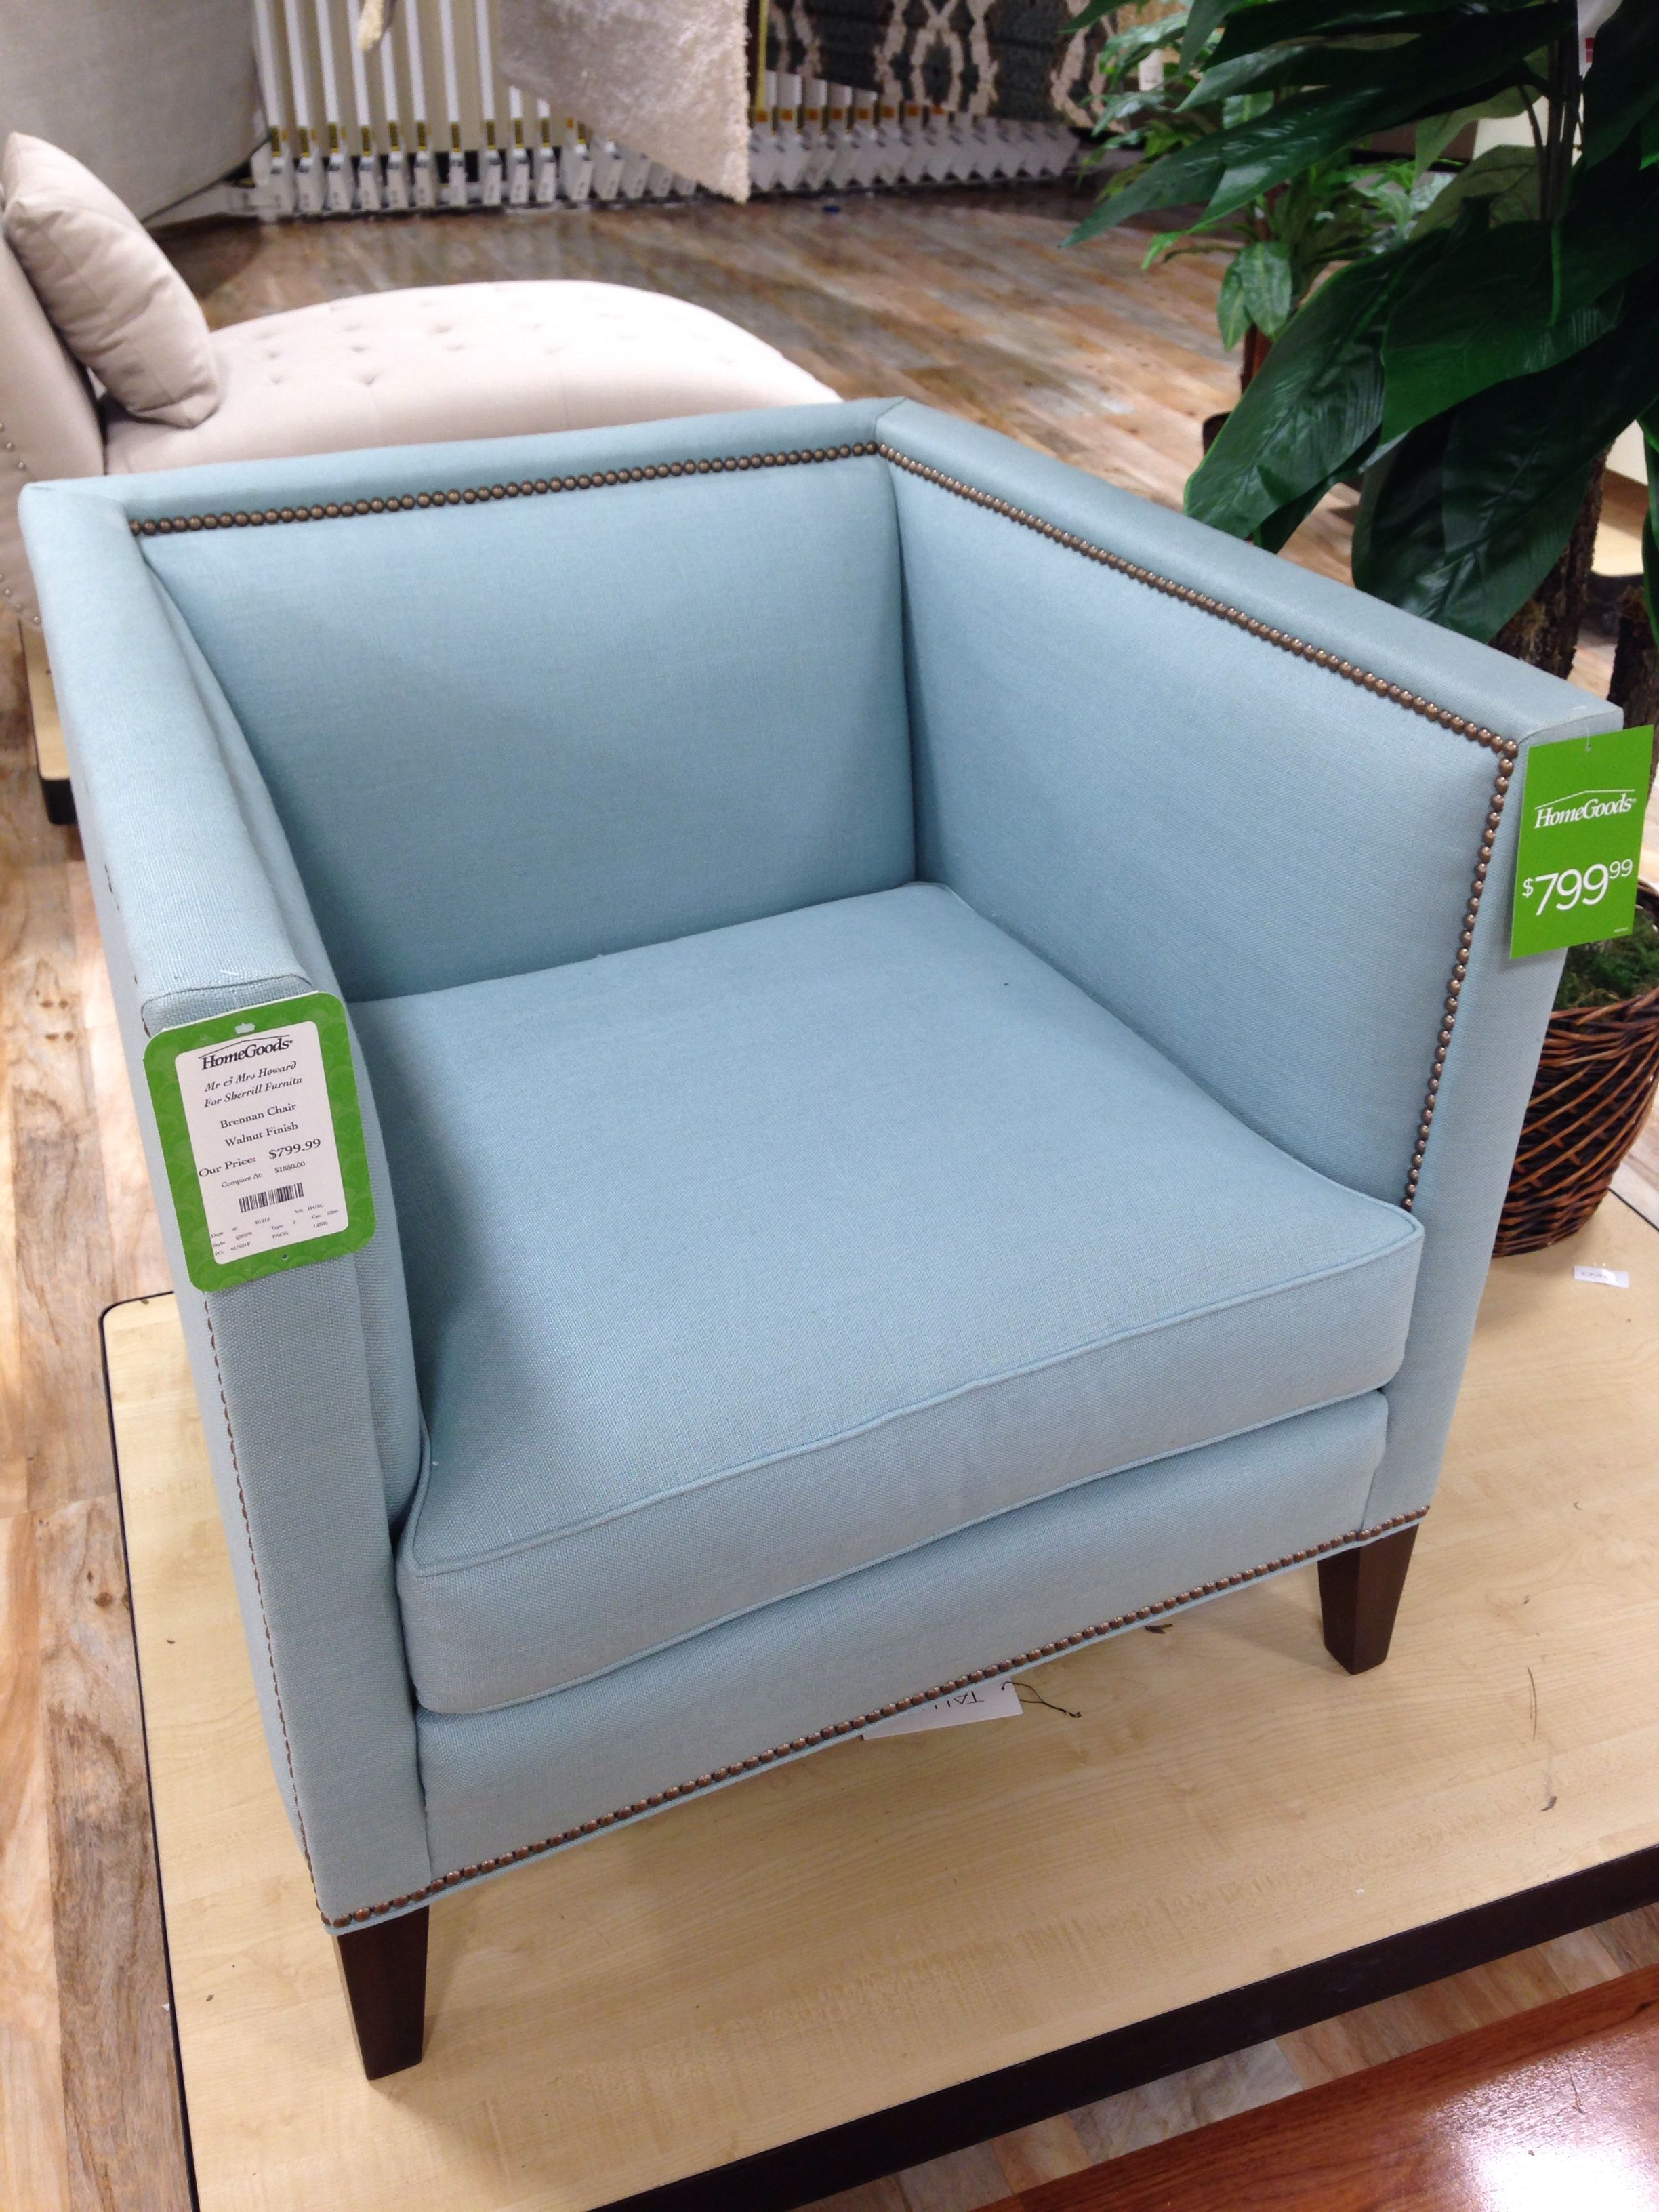 Homegoods Home Goods Home Decor Wingback Chair